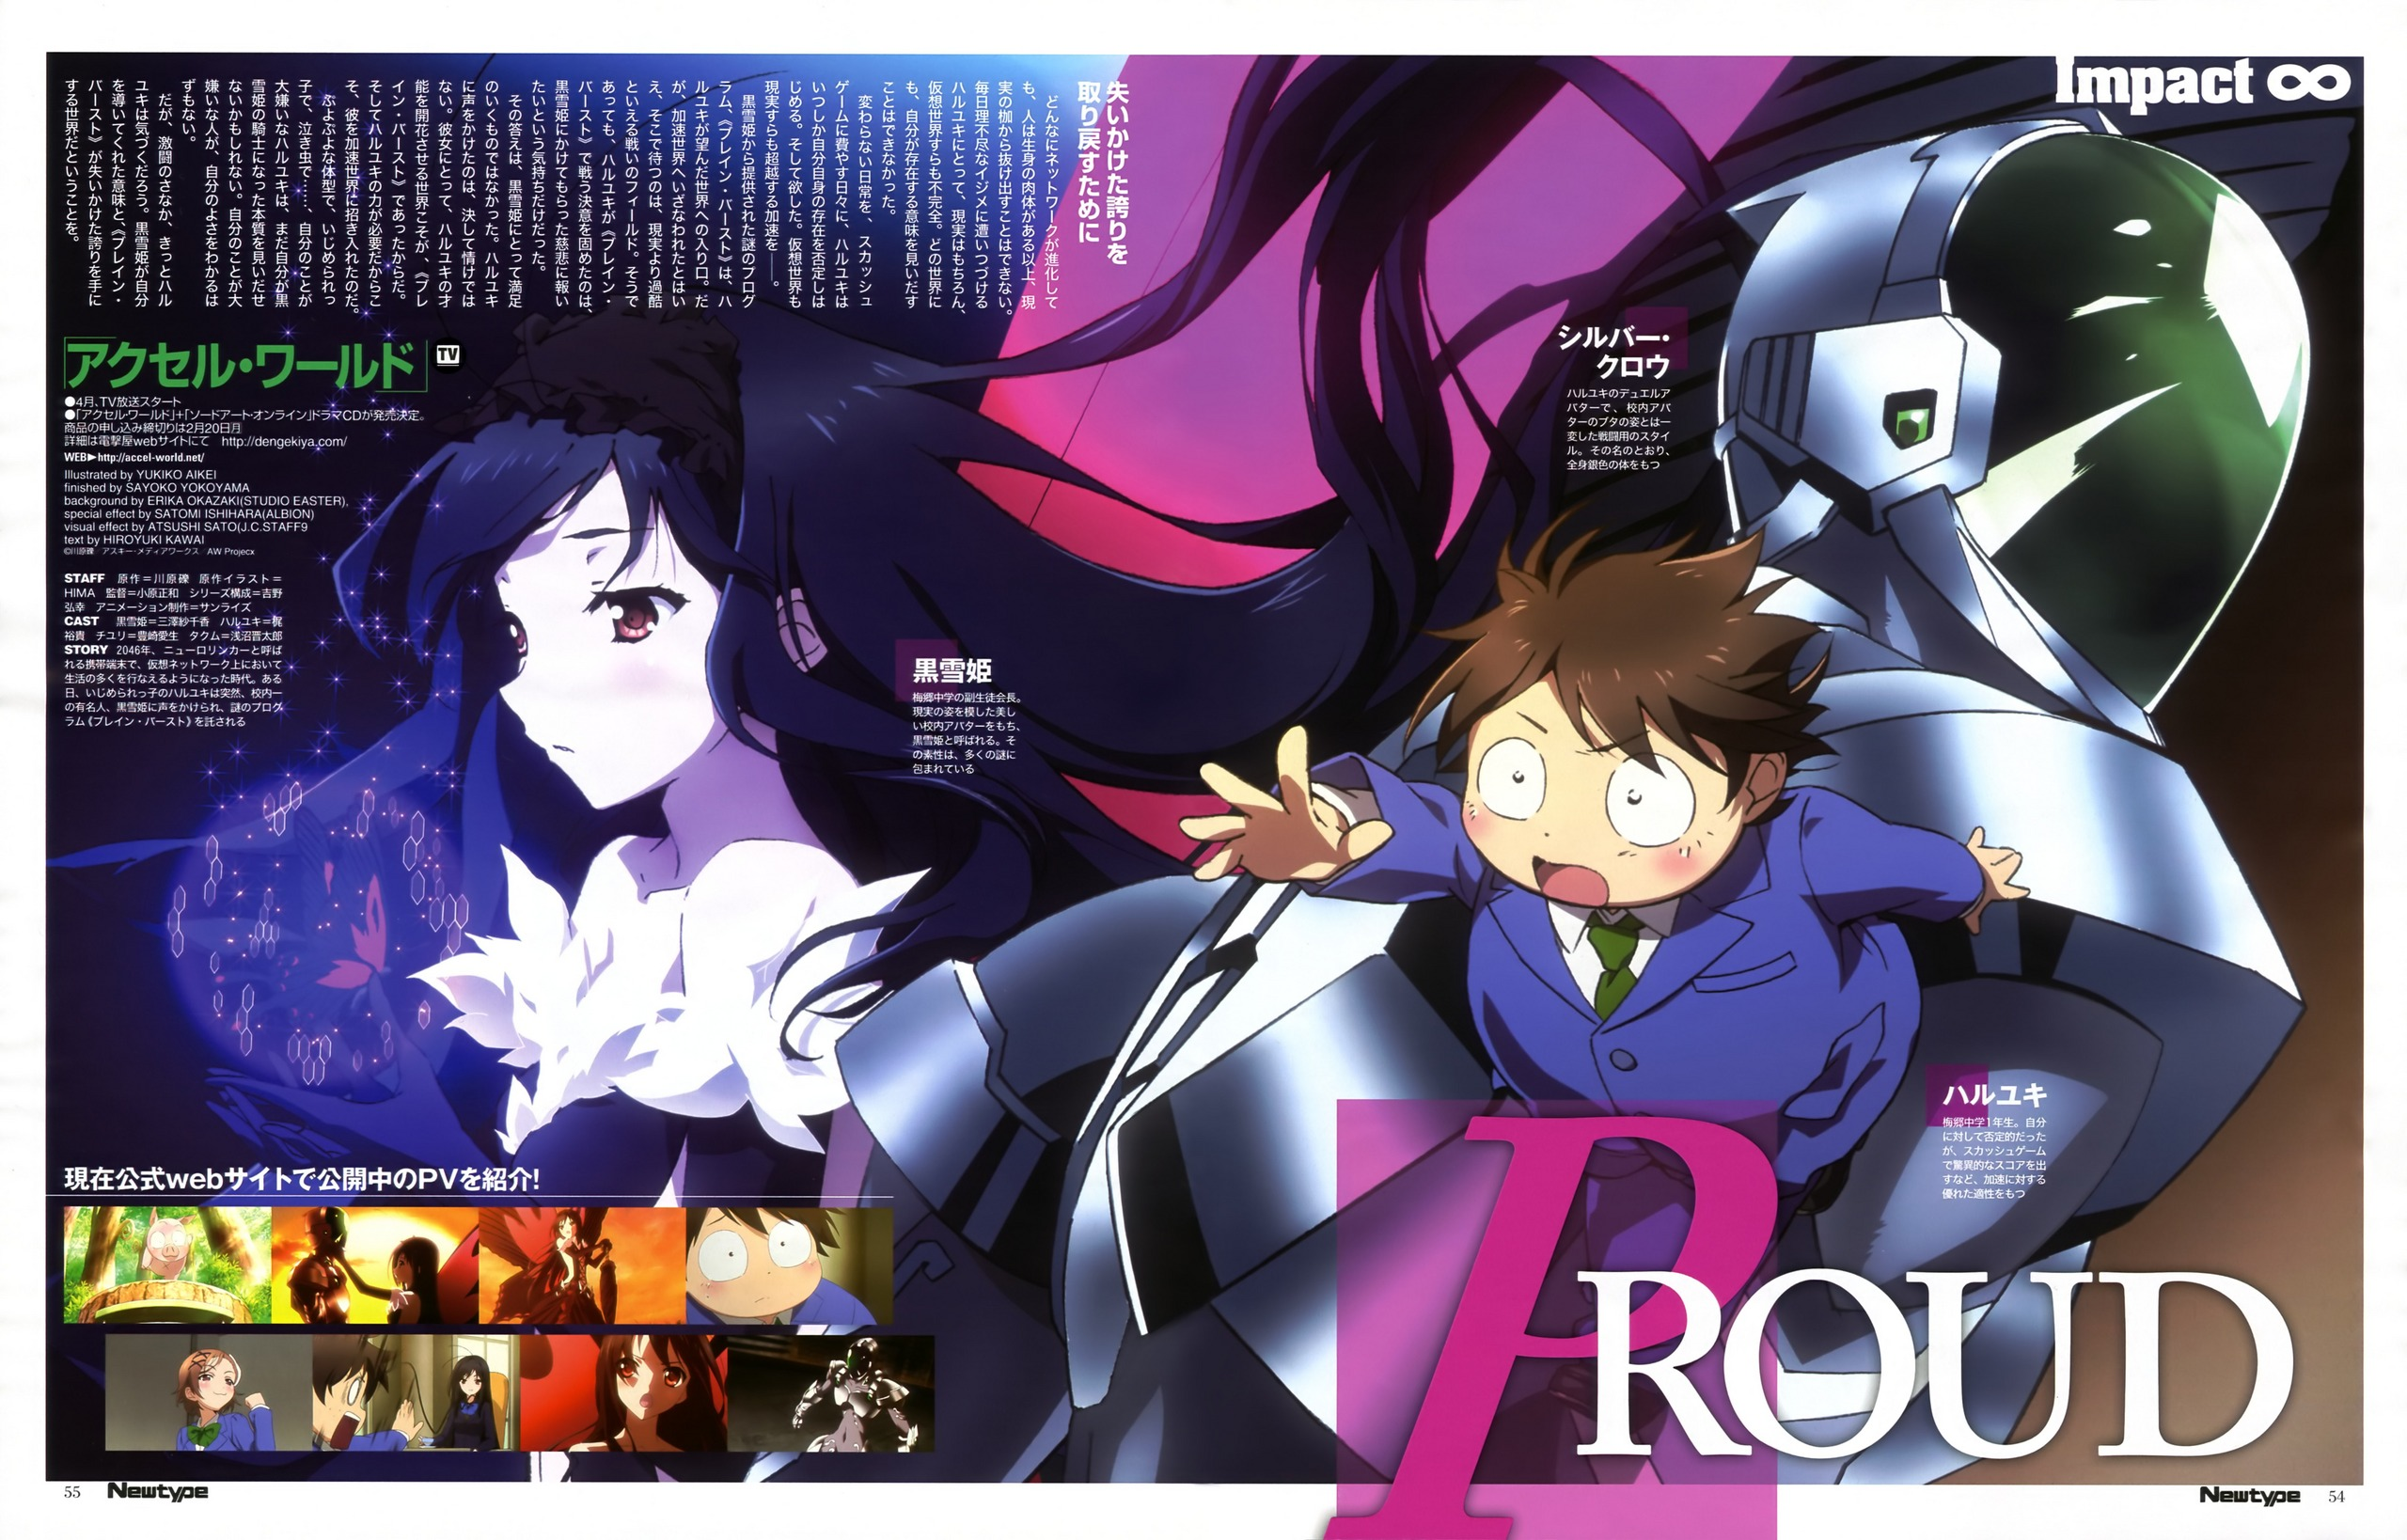 Accel World Images HD Wallpaper And Background Photos